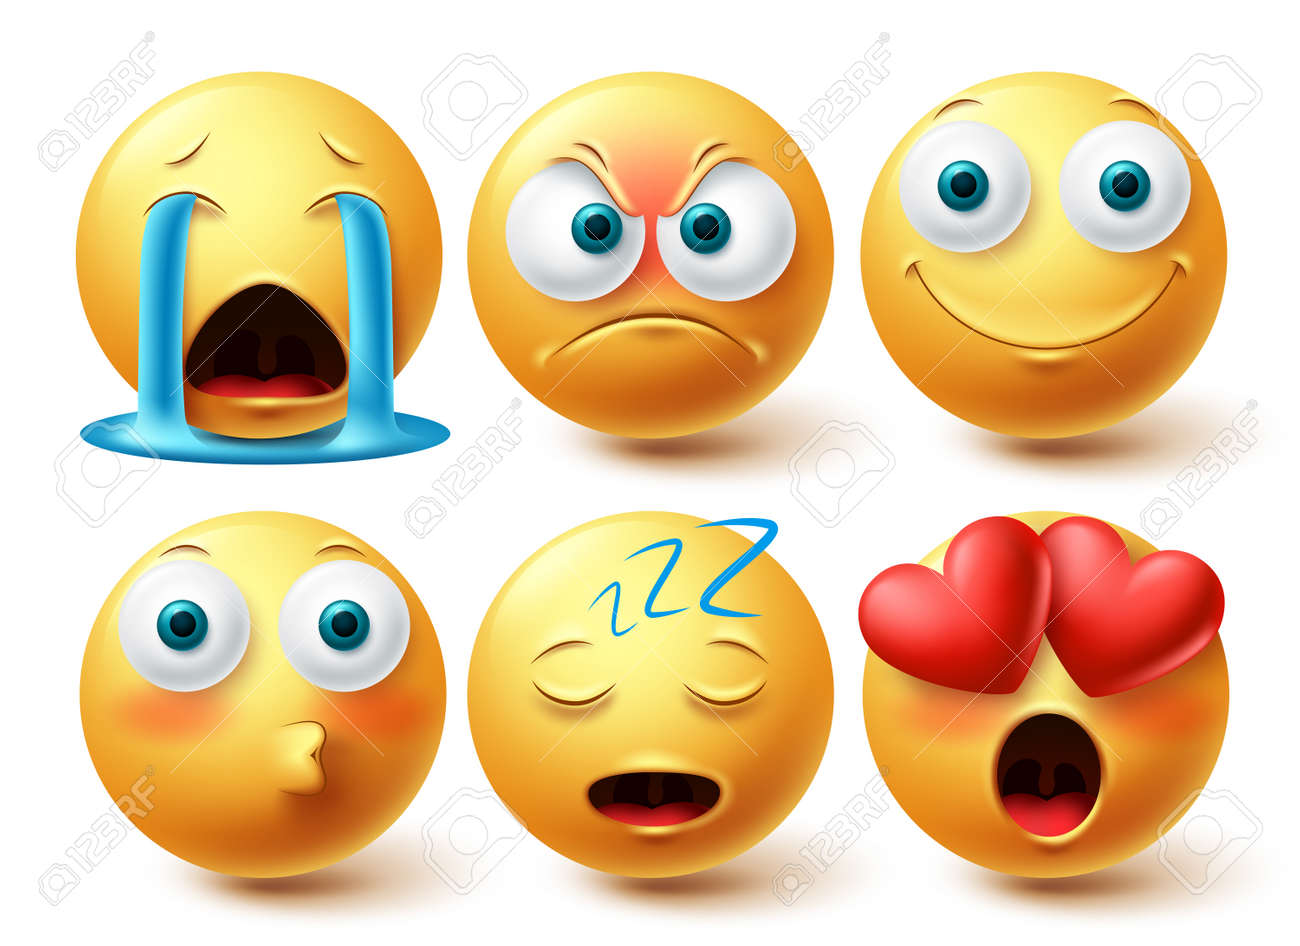 Smileys emoji face vector set. Emojis smiley collection isolated in white background for emoticon graphic elements design. Vector illustration - 171747794